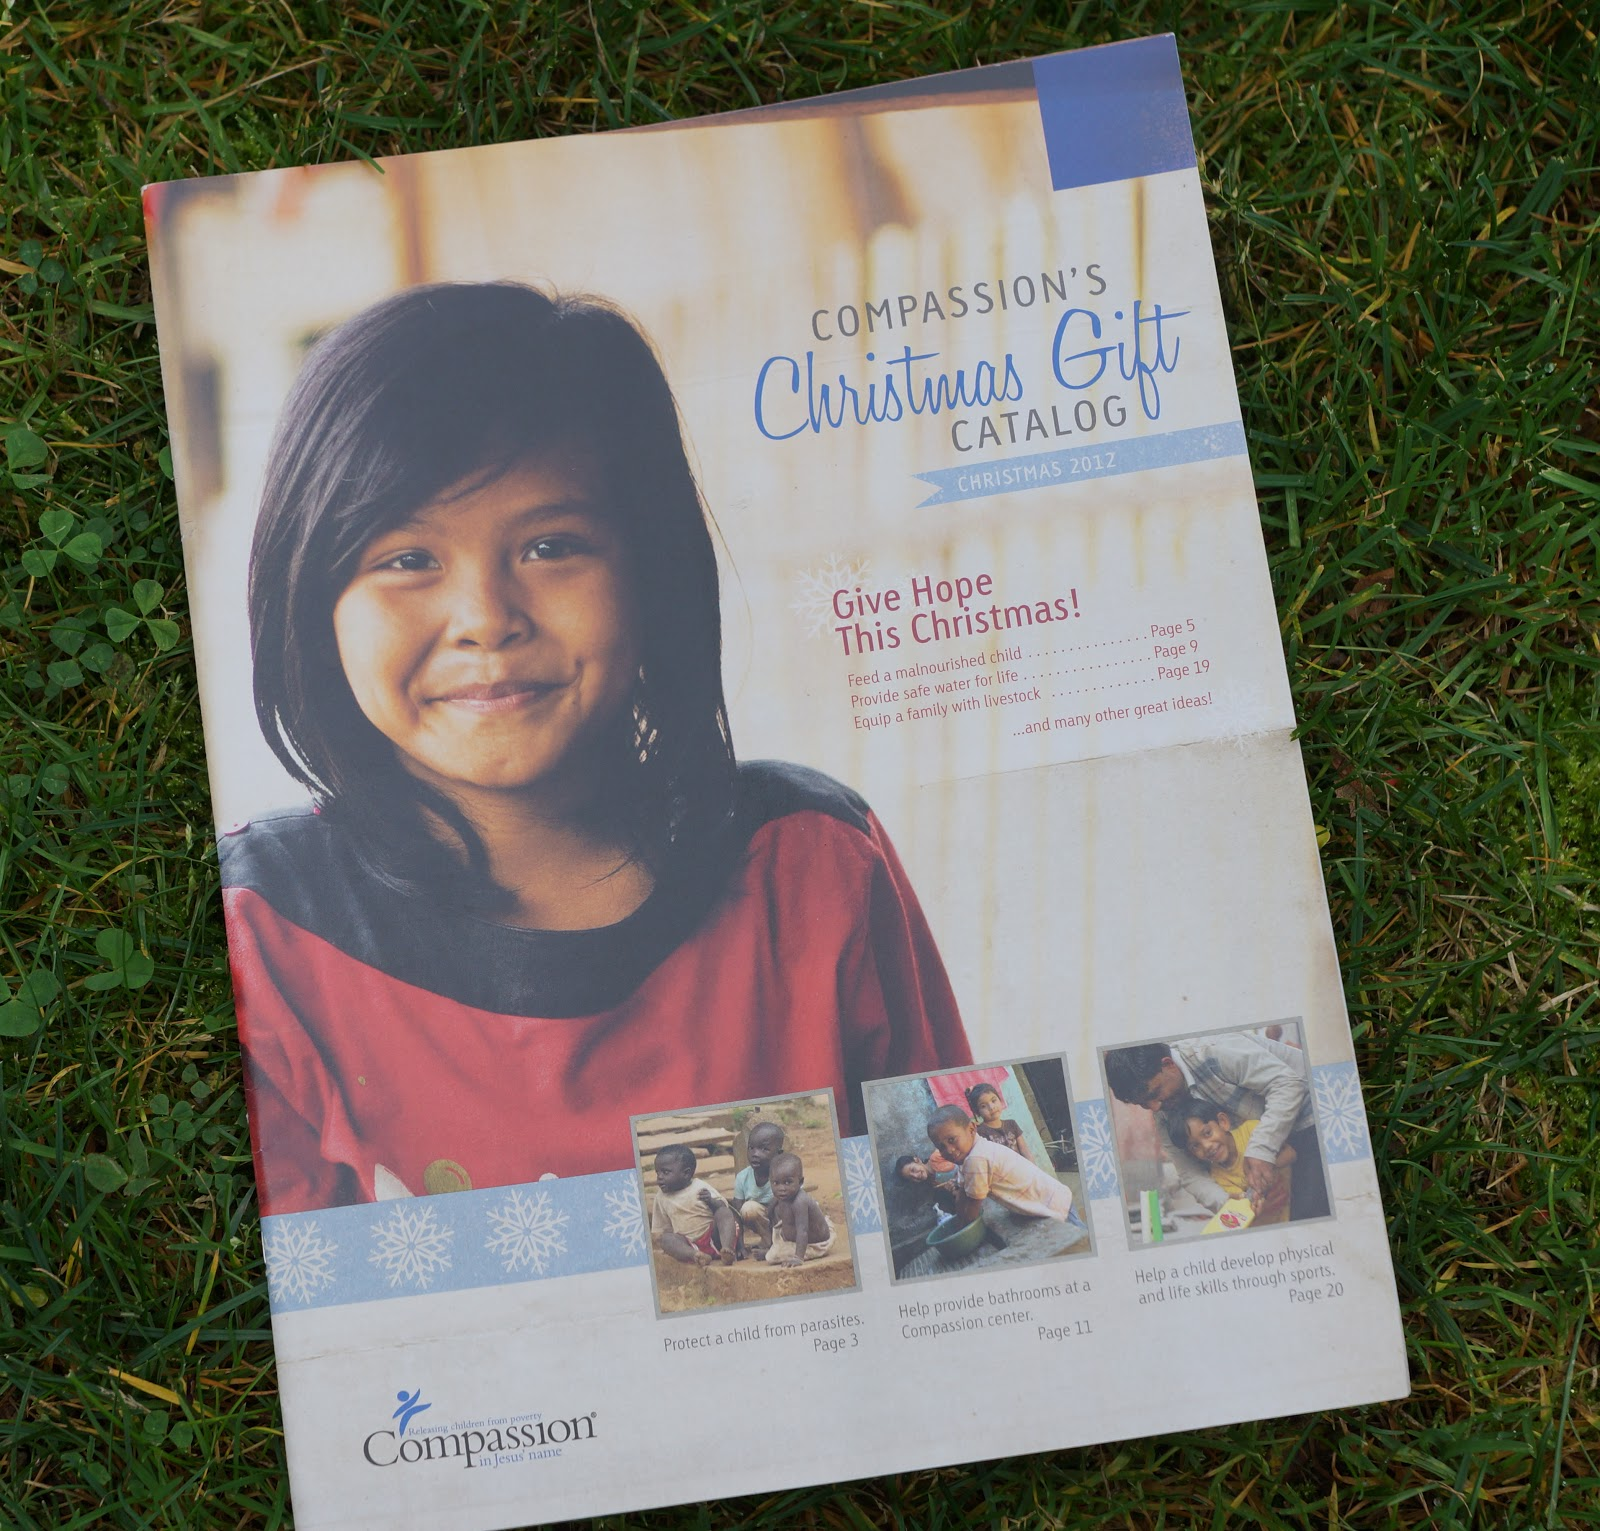 Compassion Family: Compassion's Christmas Gift Catalog